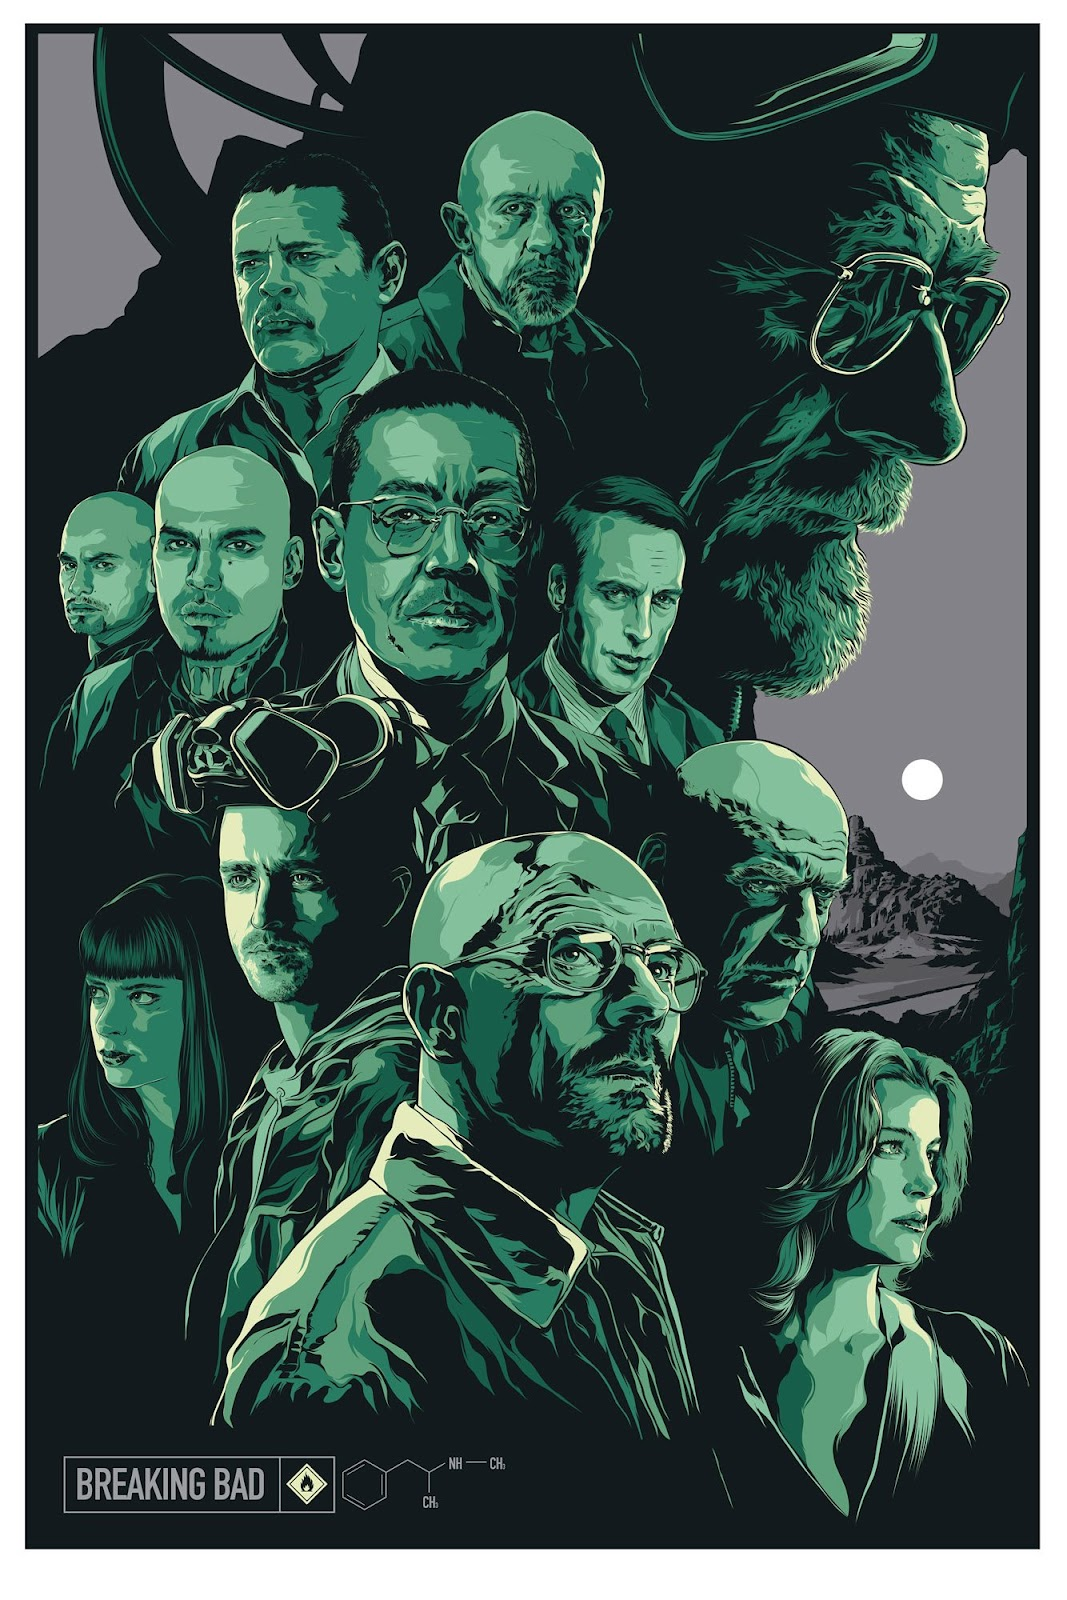 breaking bad 411posters. Black Bedroom Furniture Sets. Home Design Ideas